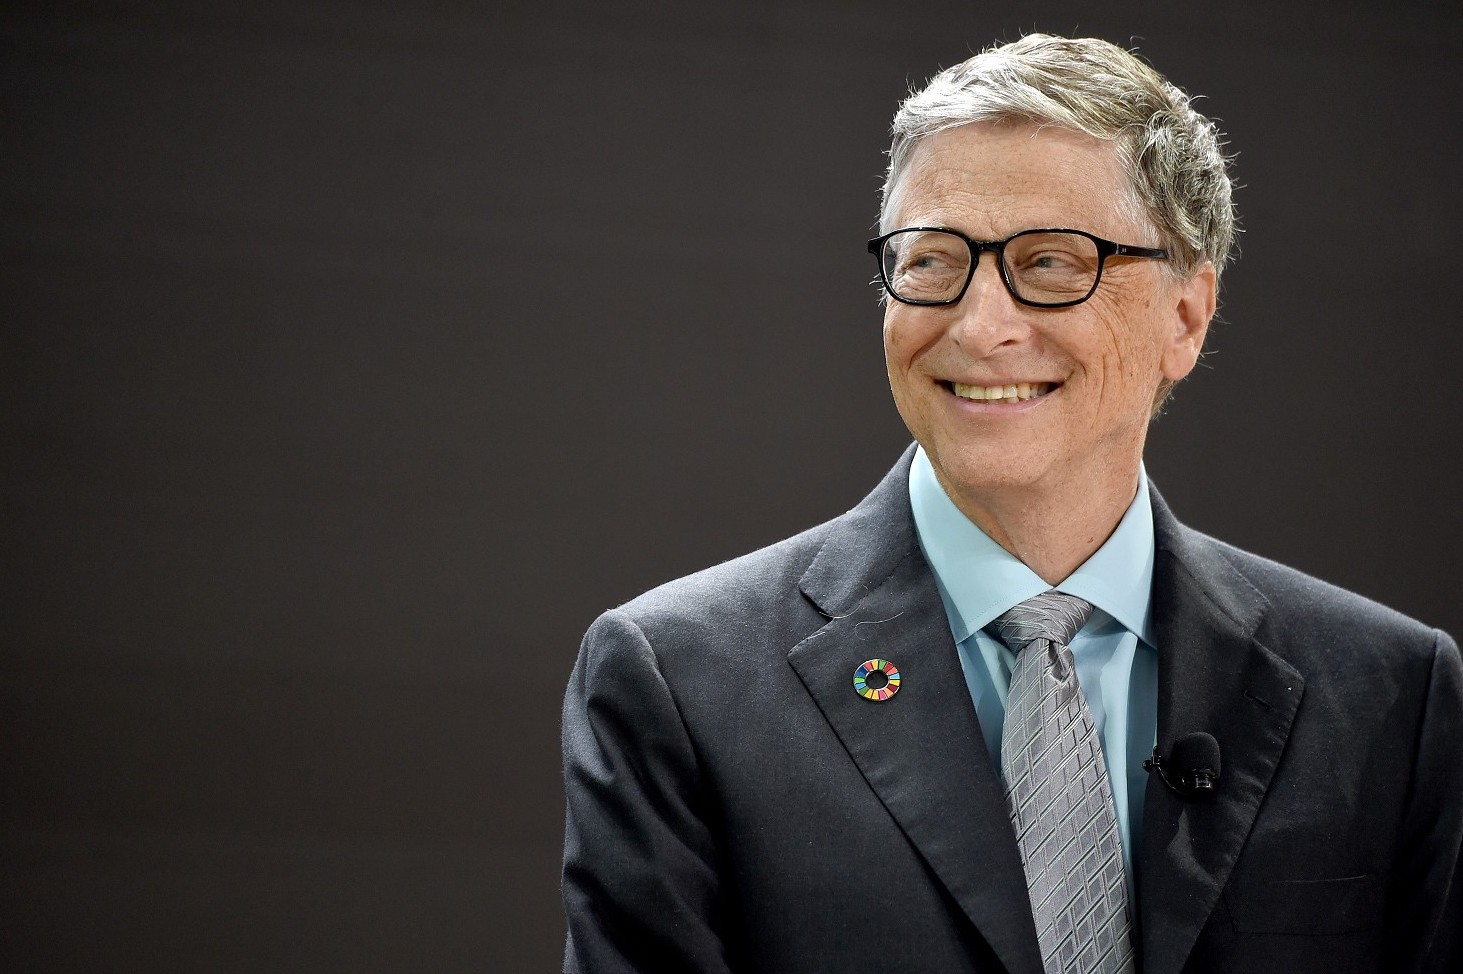 Bill Gates, mucca e galline mai viste in